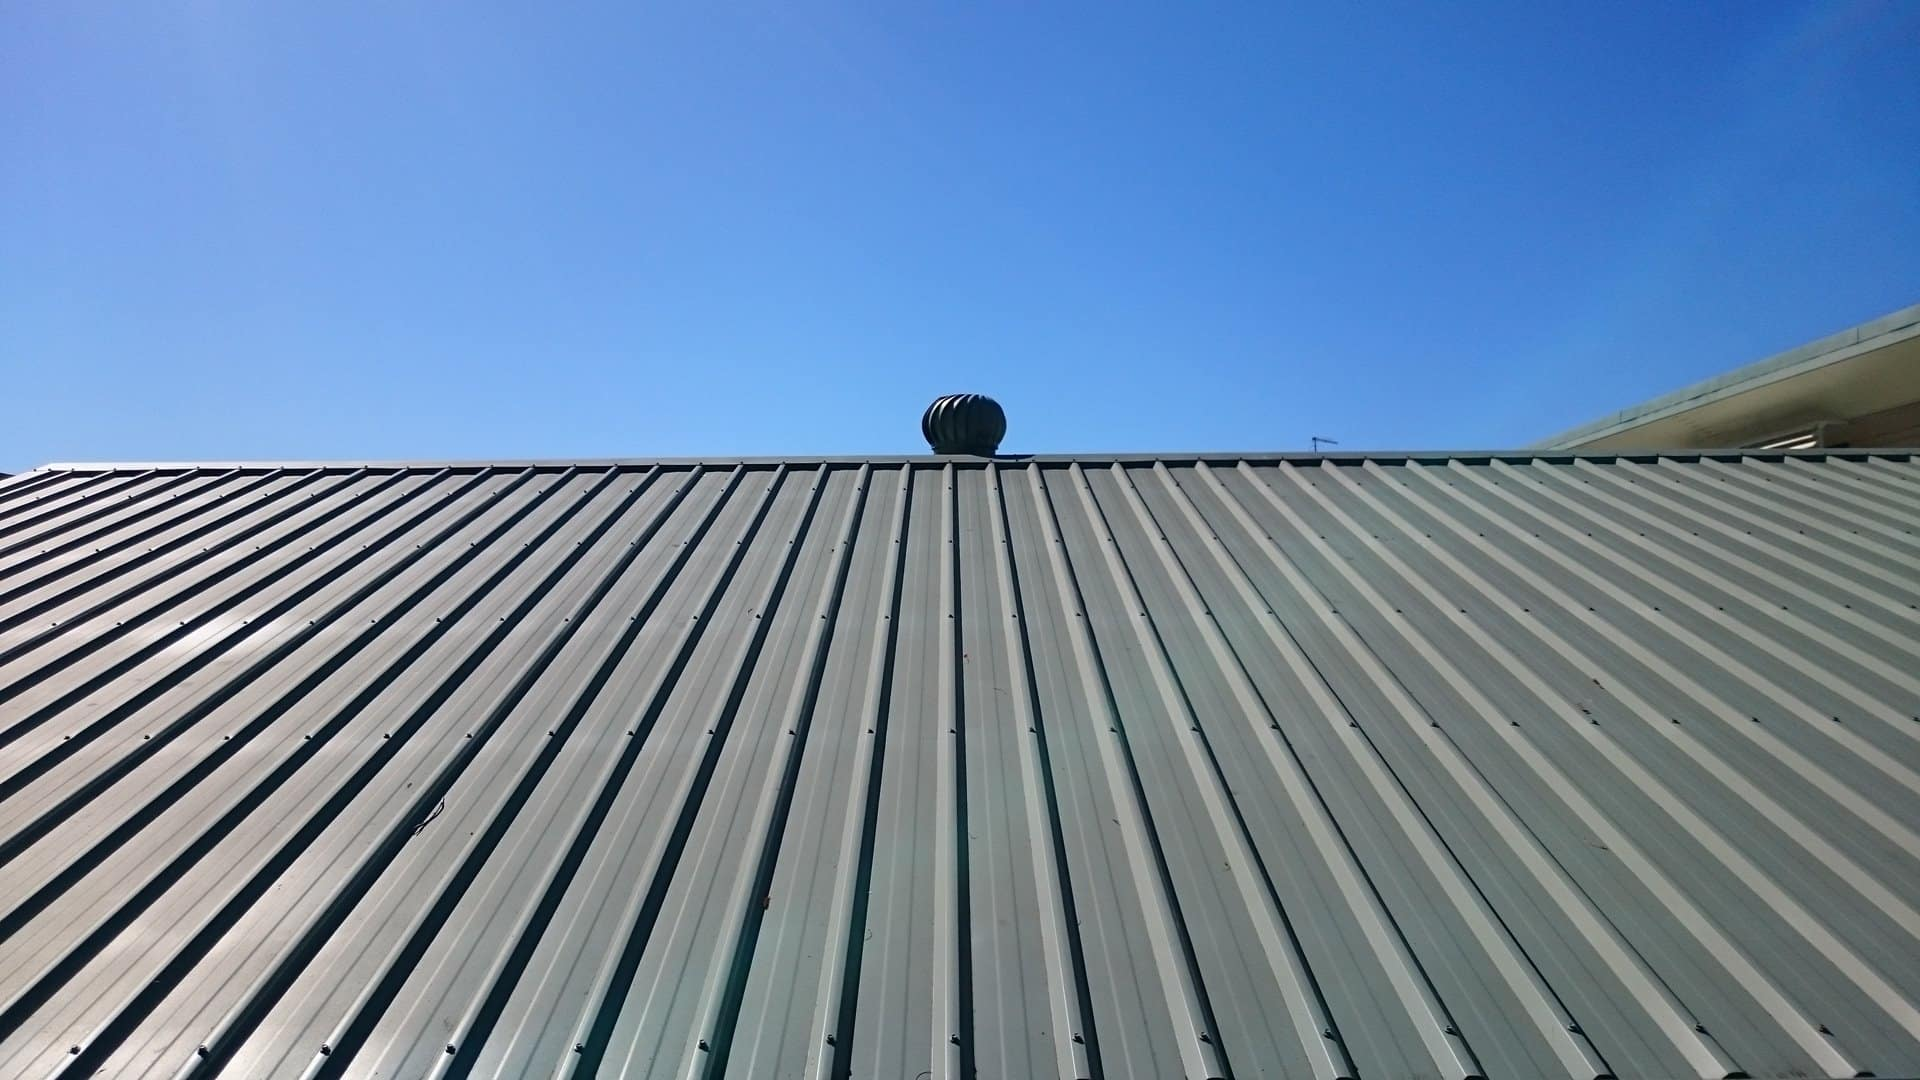 Roof with vent.